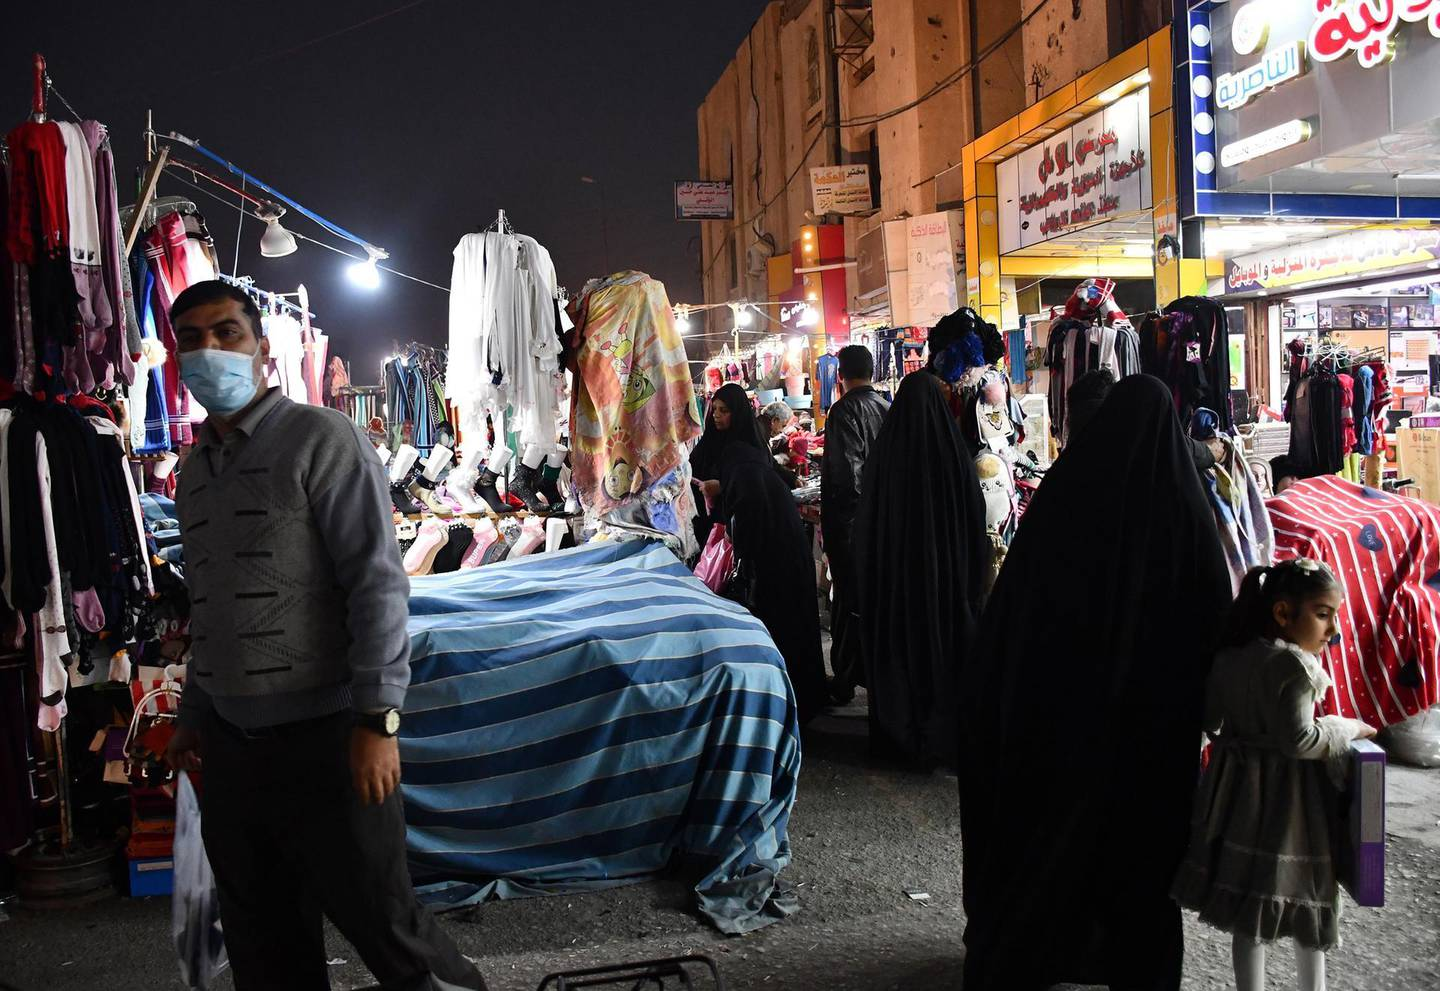 A man wearing a face mask due to the novel coronavirus walks in a market in the southern Iraqi city of Nasiriyah in the Dhi Qar province, on December 20, 2020.  A year of economic agony for pandemic-hit and oil-reliant Iraq is drawing to a close, but a draft 2021 budget involving a hefty currency devaluation could bring more pain for citizens. Iraq, which relies on oil sales to finance 90 percent of its budget, projects that its economy has shrunk by 11 percent this year, while poverty doubles to 40 percent of the country's 40 million residents. / AFP / Asaad NIAZI